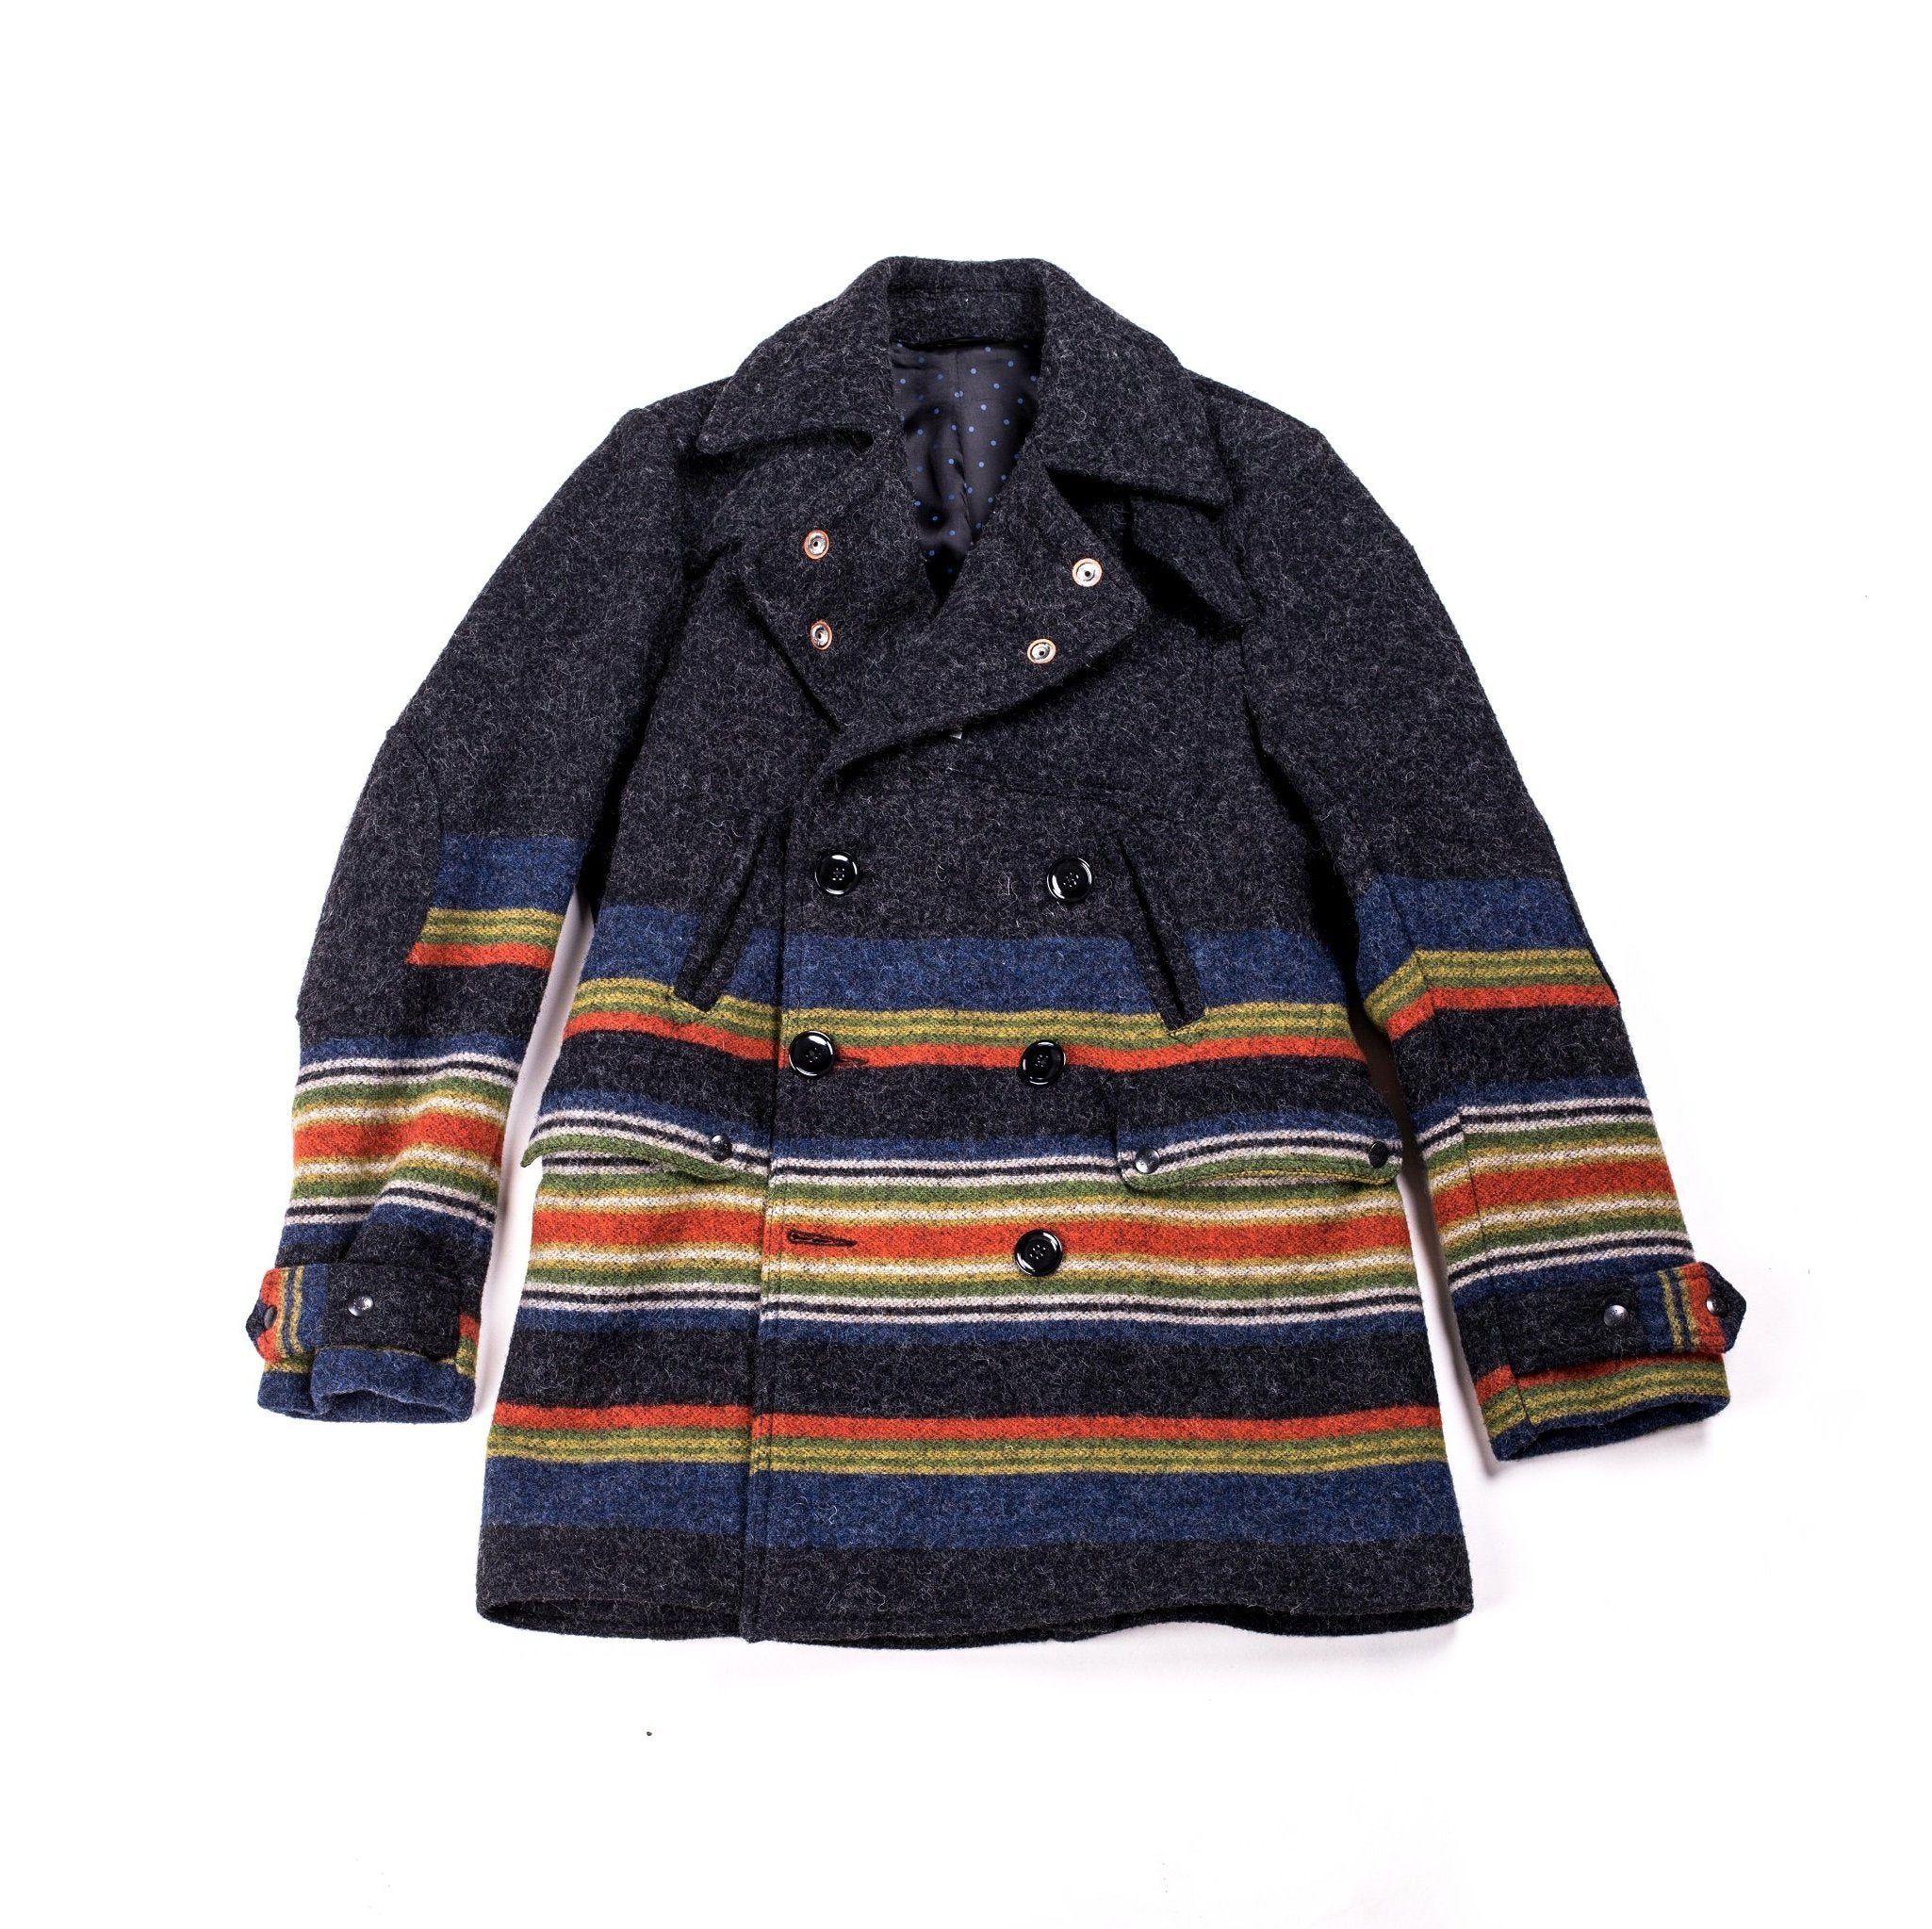 Monitaly Riders Coat - Atacama Clothing